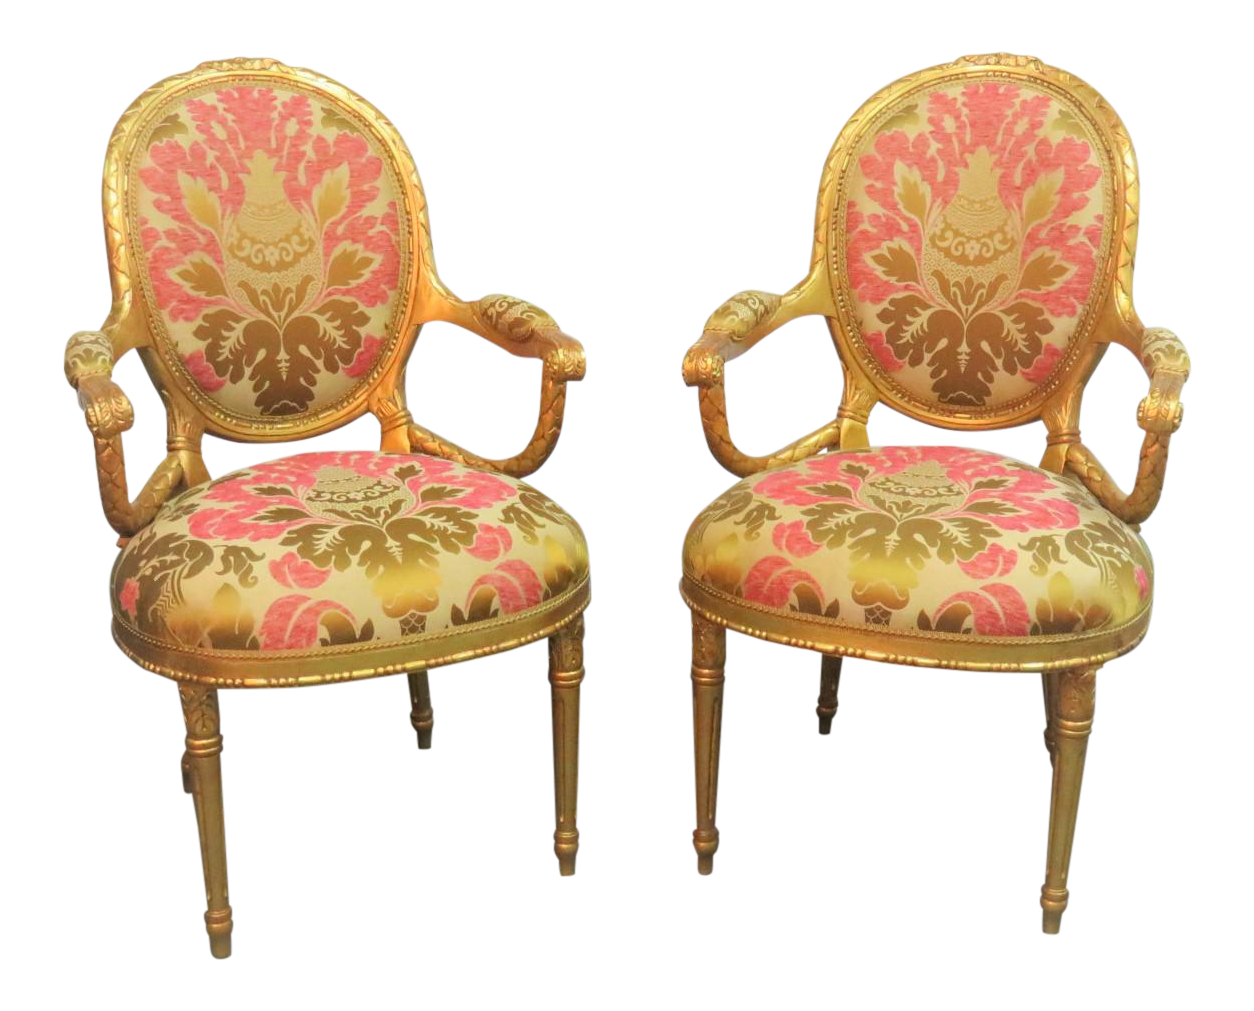 Fauteuil Chesterfield Fushia Lewis Mittman Giltwood Carved Fauteuils A Pair